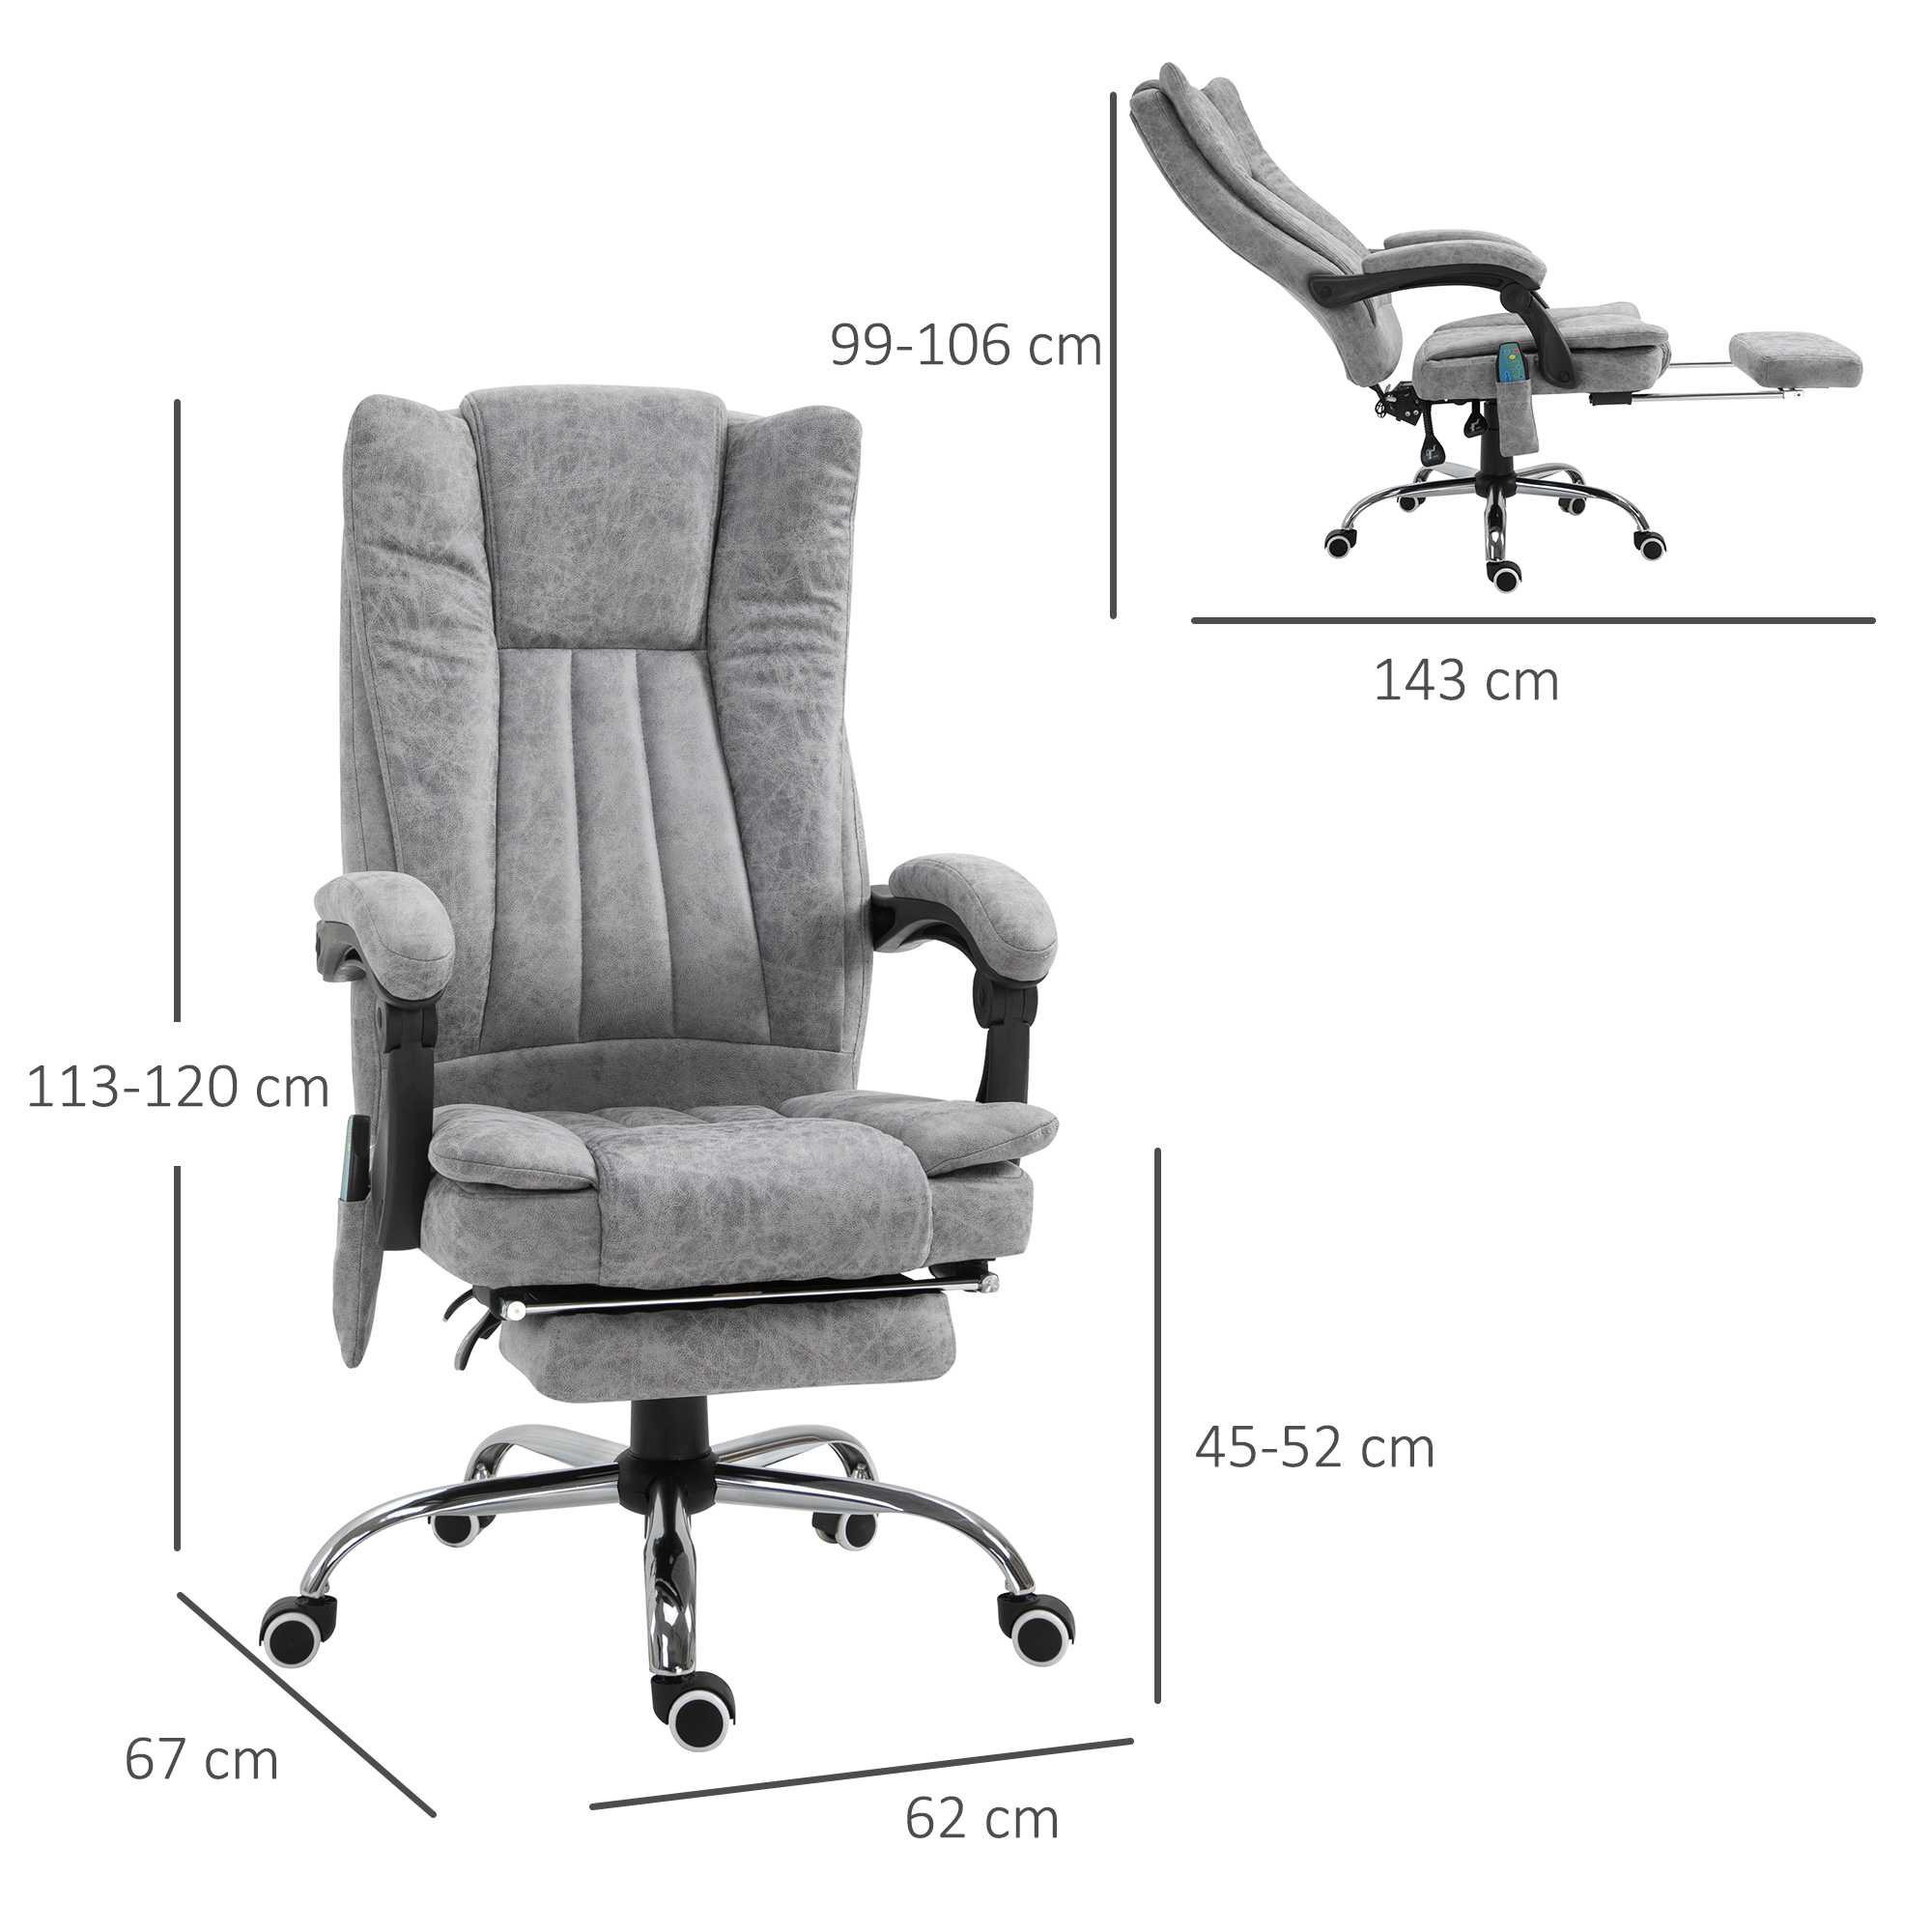 6 Point Vibrating Massage Office Chair Pu Leather W Manual Footrest Padding Ebay